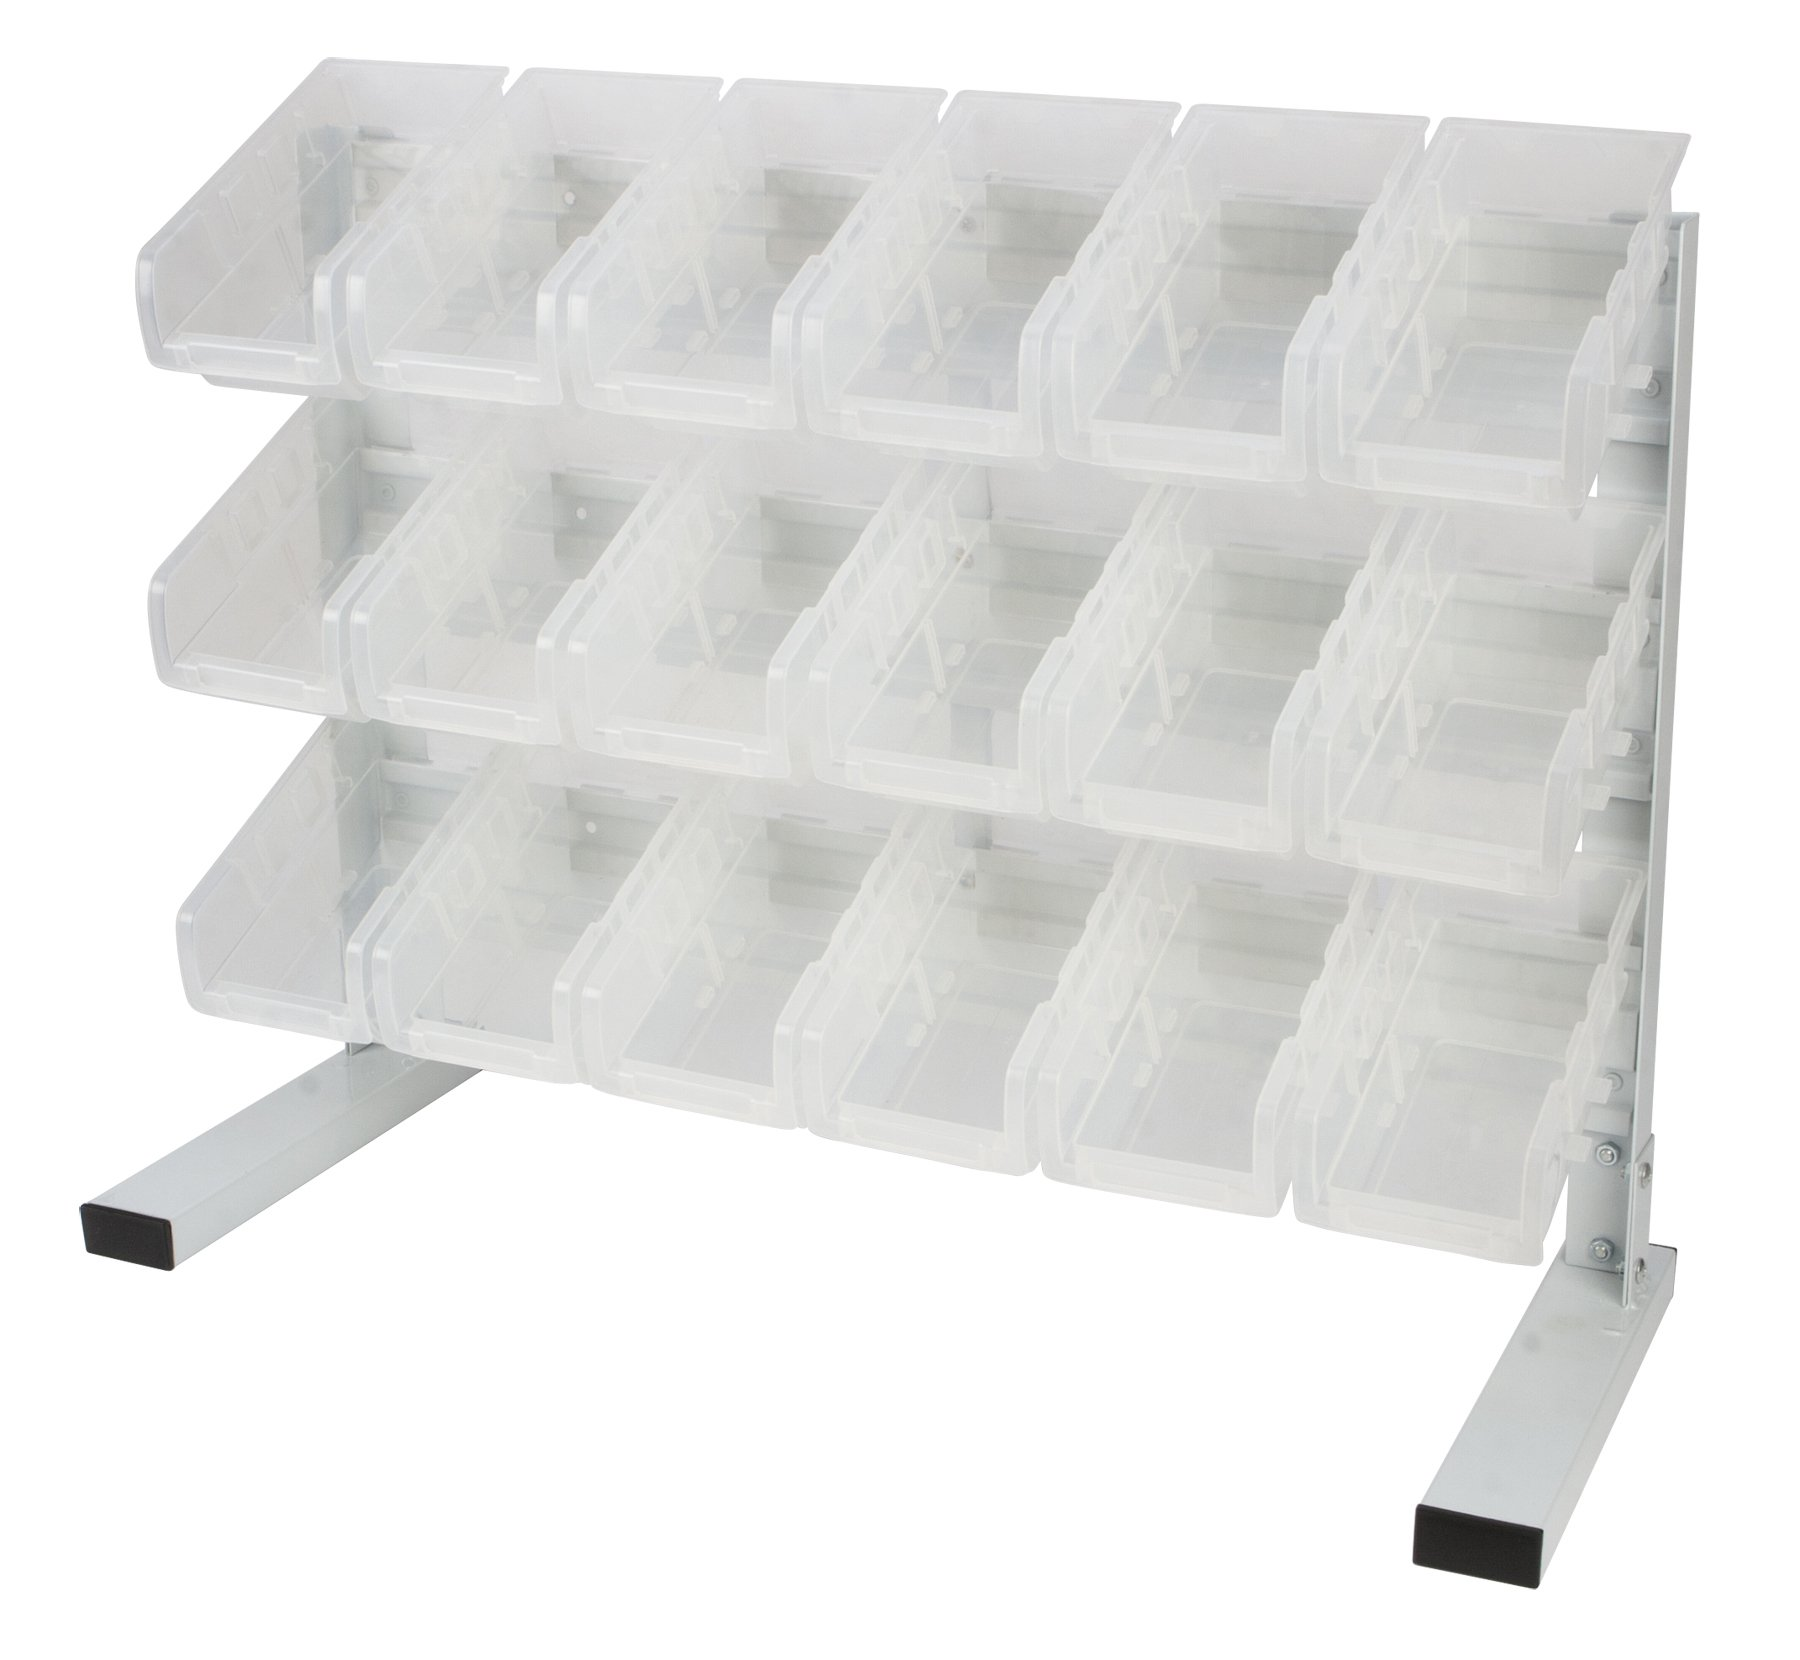 Performance Tool W5170 18pc Clear Plastic Patented Dual Angle Tilt Storeage Bins, Rack for Crafts Hardware, Sewing, Art Supplies and More